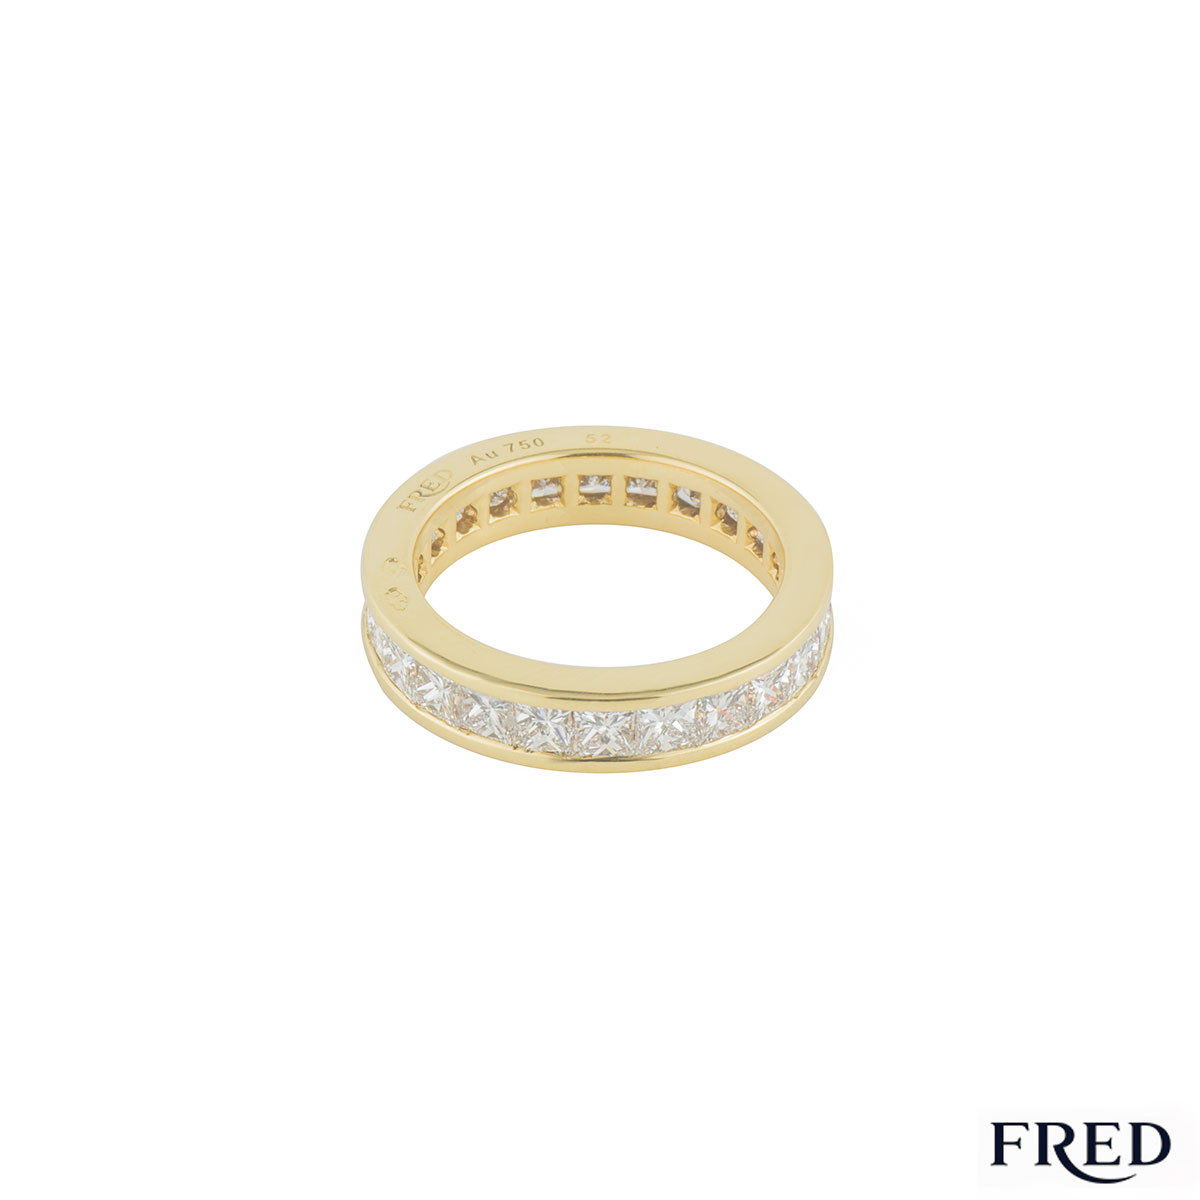 Fred Yellow Gold Diamond Eternity Ring 3.12ct F/VS+